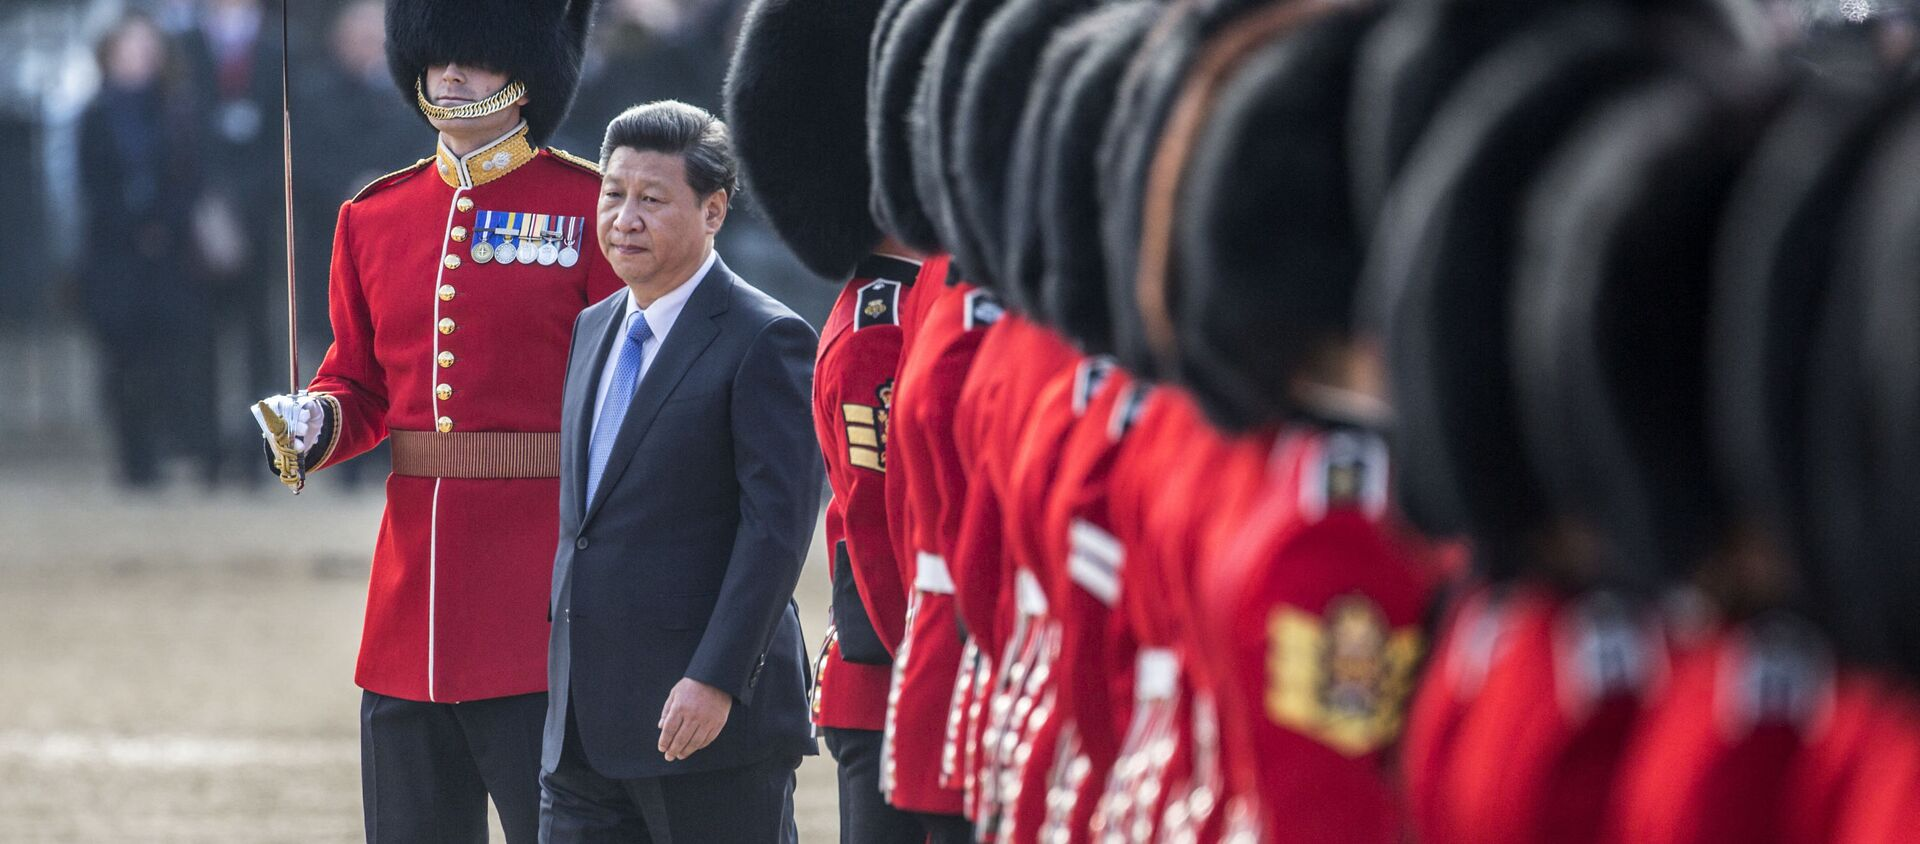 Chinese President Xi Jinping (C) inspects the guard of honour on Horse Guards Parade in central London on October 20, 2015 during the ceremonial welcome for Chinese President Xi Jinping and his wife Peng Liyuan on the first official day of a state visit. - Sputnik International, 1920, 16.03.2021